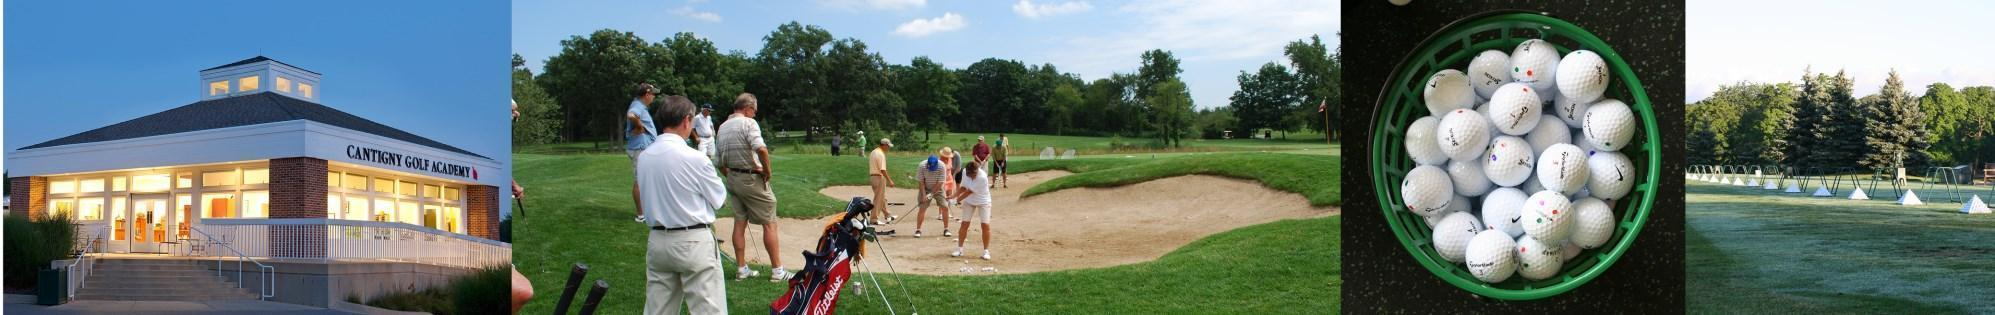 Cantigny Golf Academy website header images 1995 x 315 reduced size